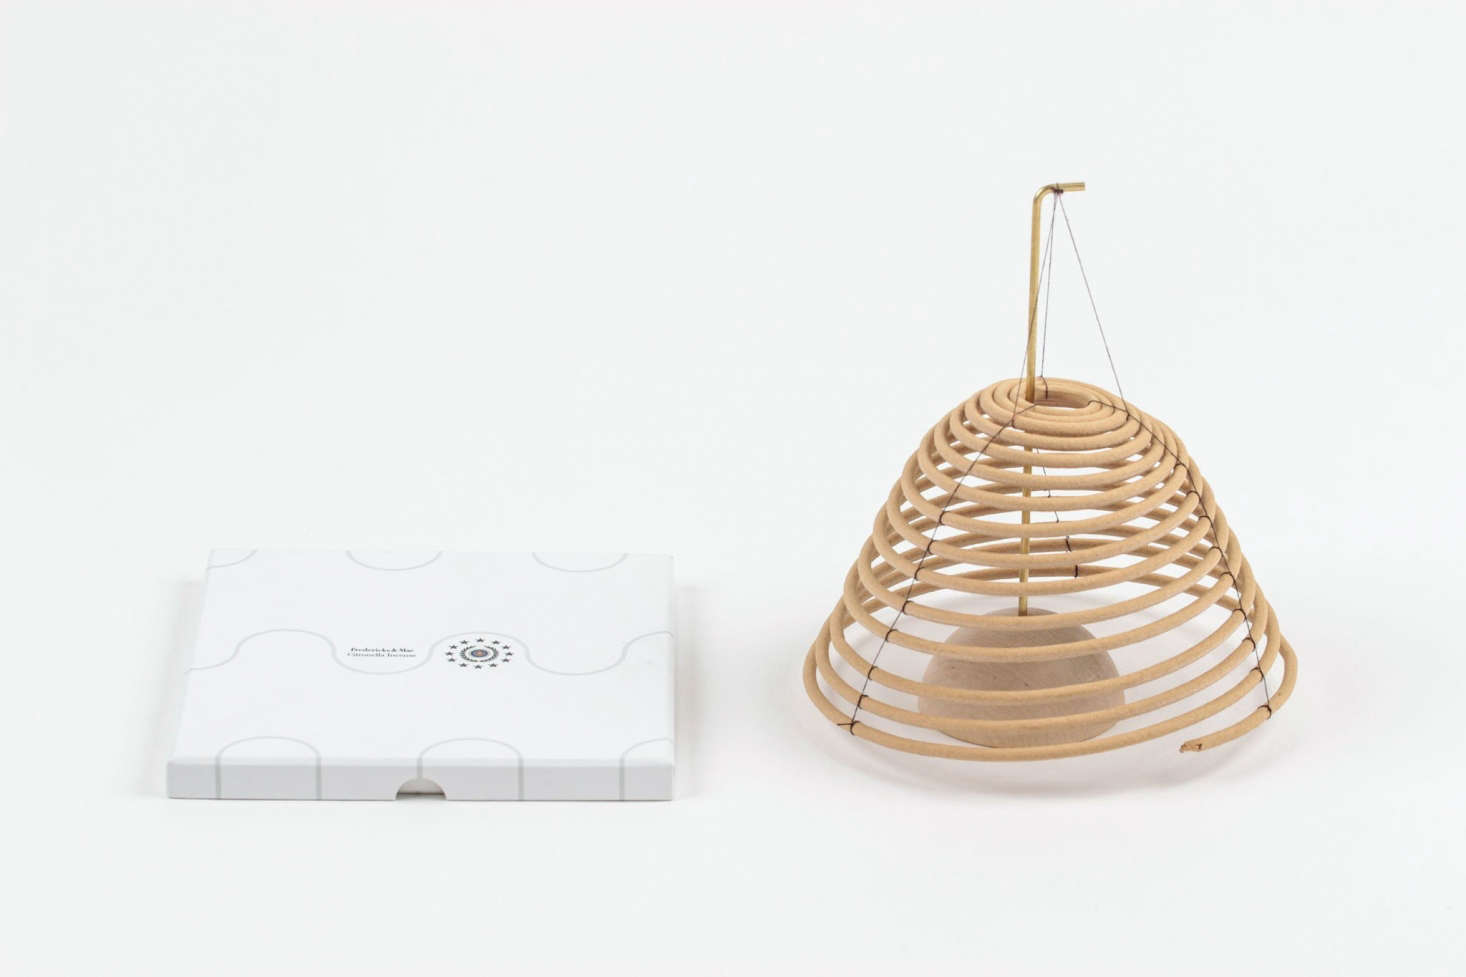 TheHanging Citronella Coil from Fredericks & Mae is a well-designed deterrent for pesky mosquitoes. It&#8